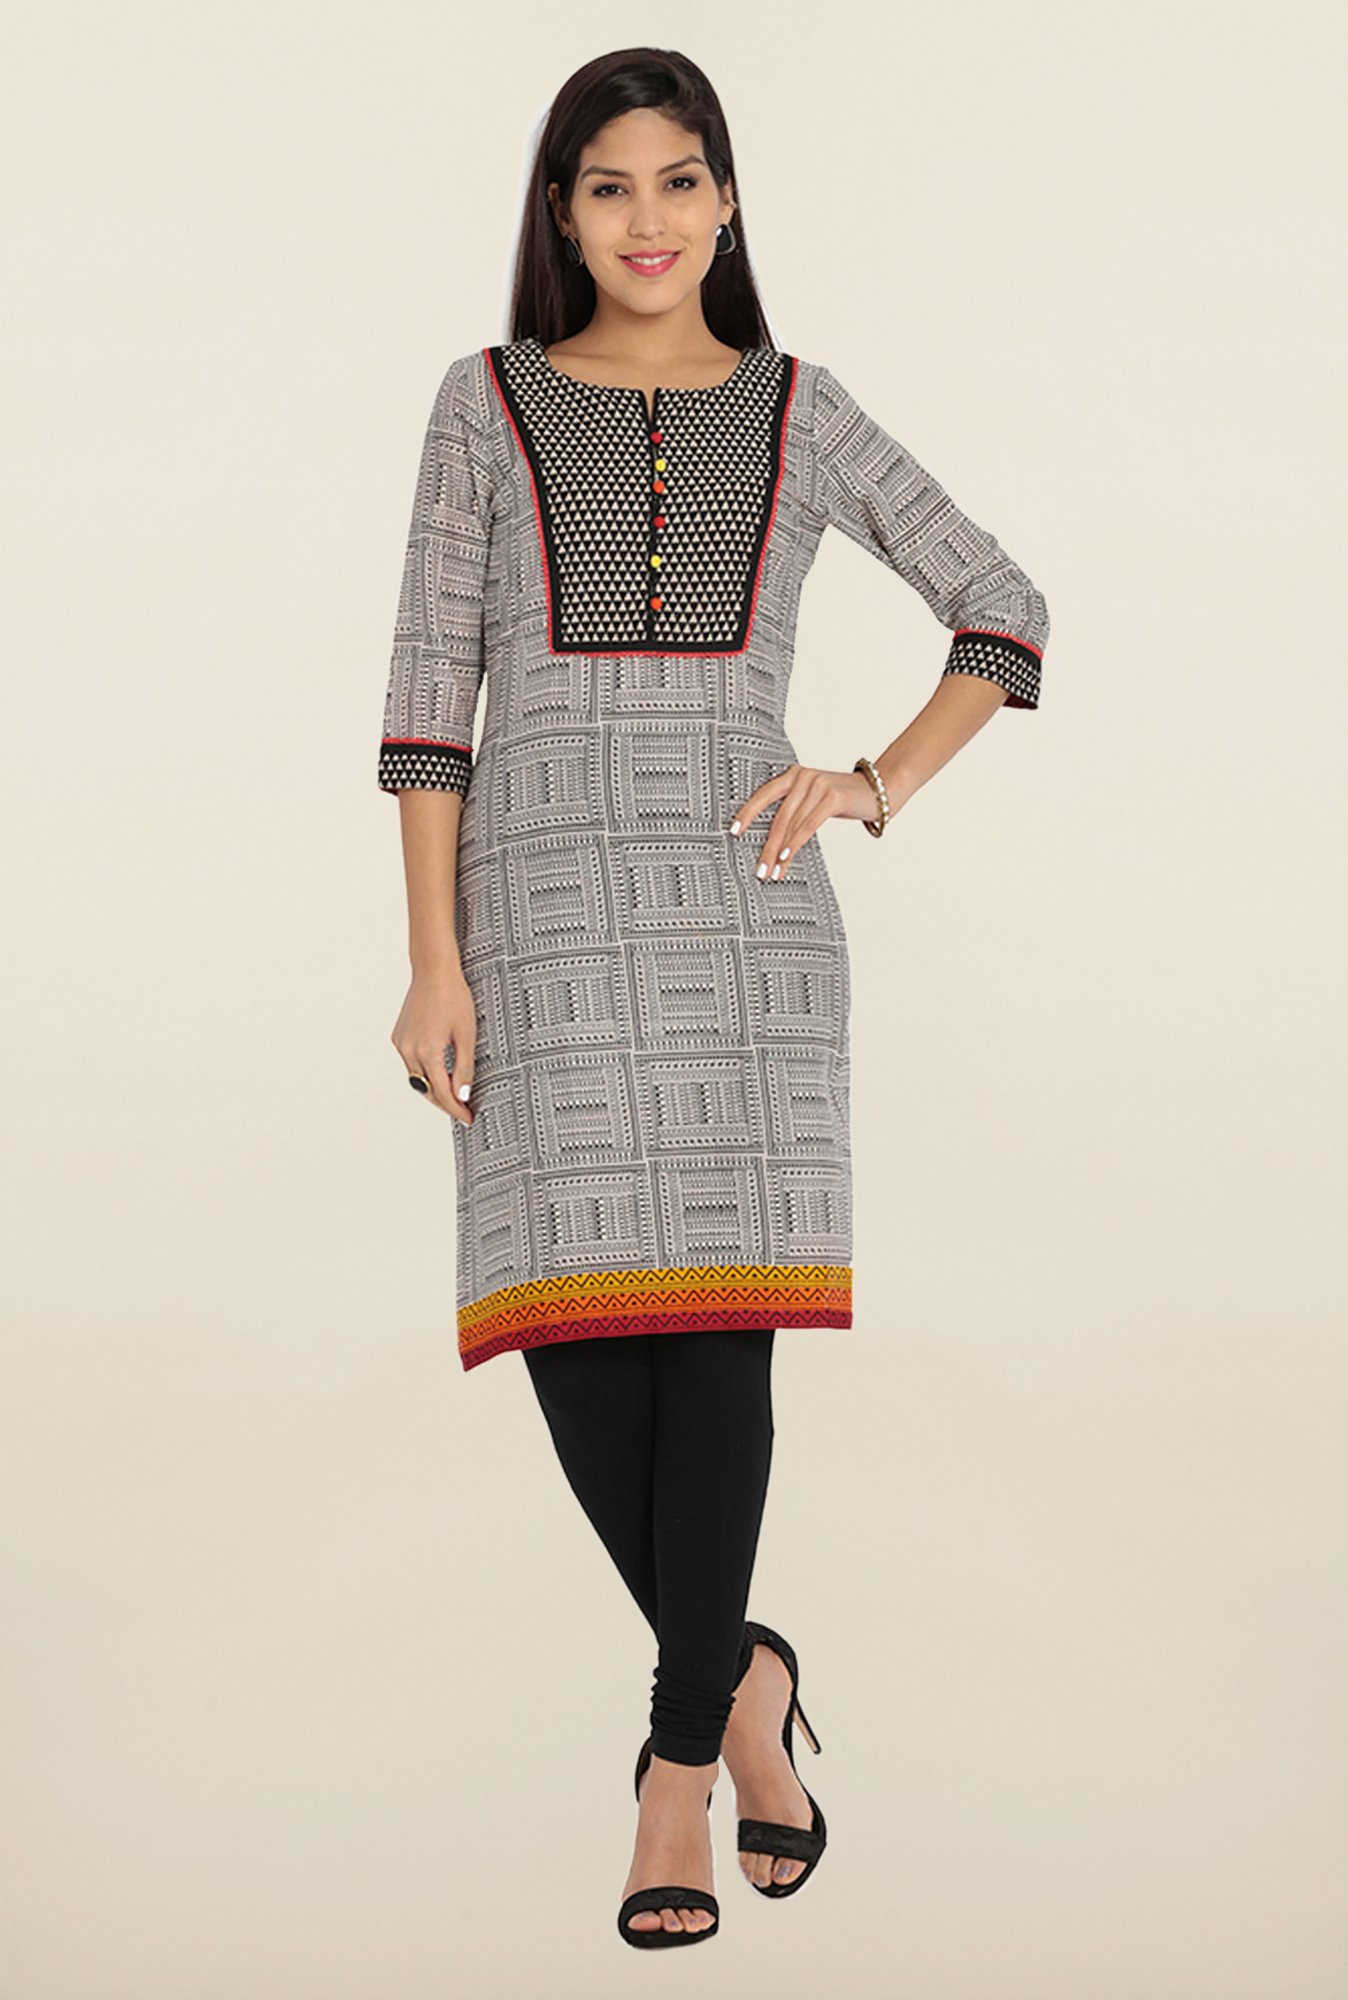 Soch White & Black Printed Cotton Kurta